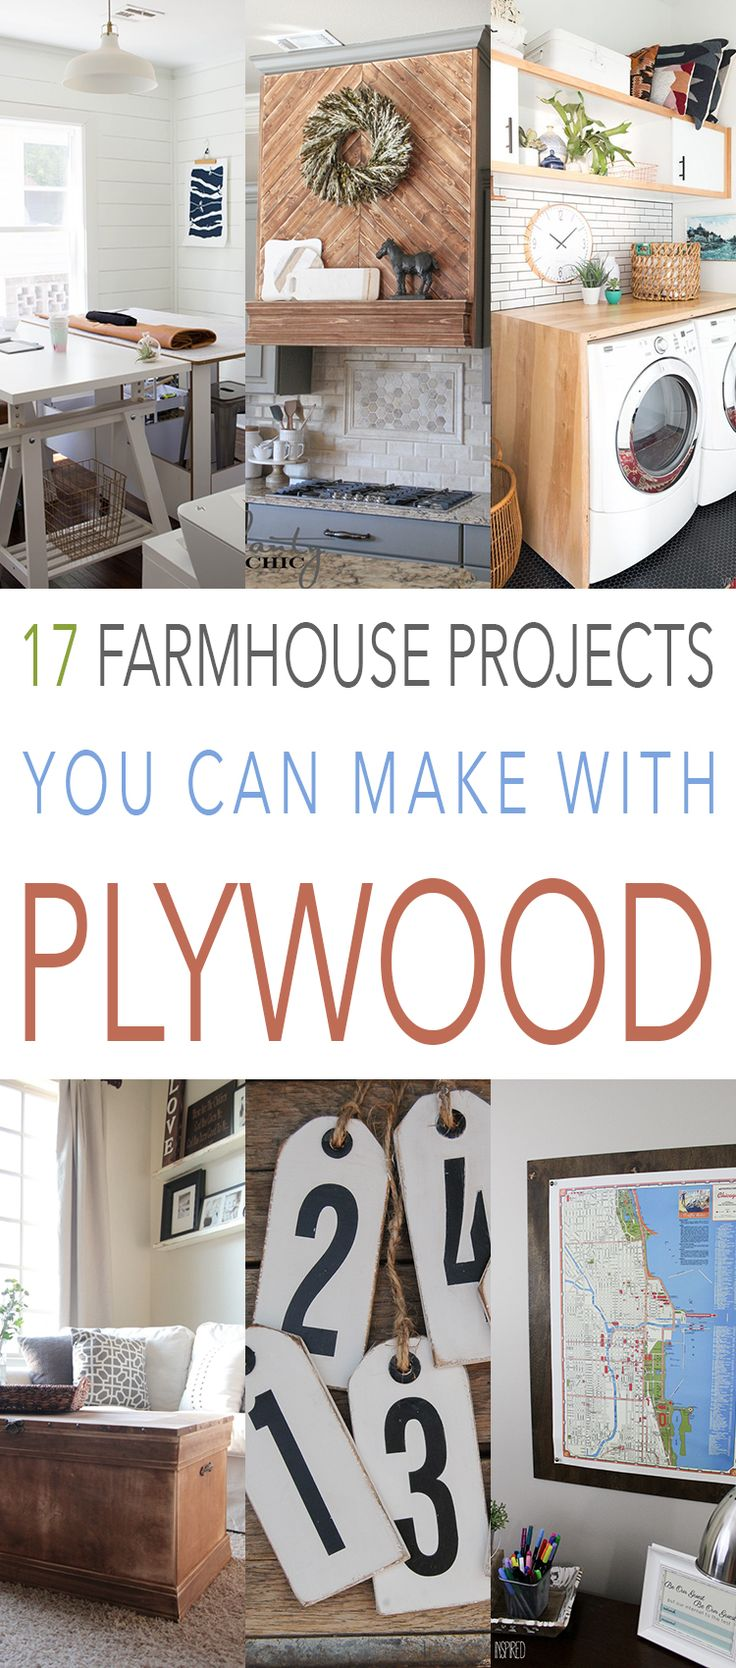 17 Farmhouse Projects You Can Make With Plywood